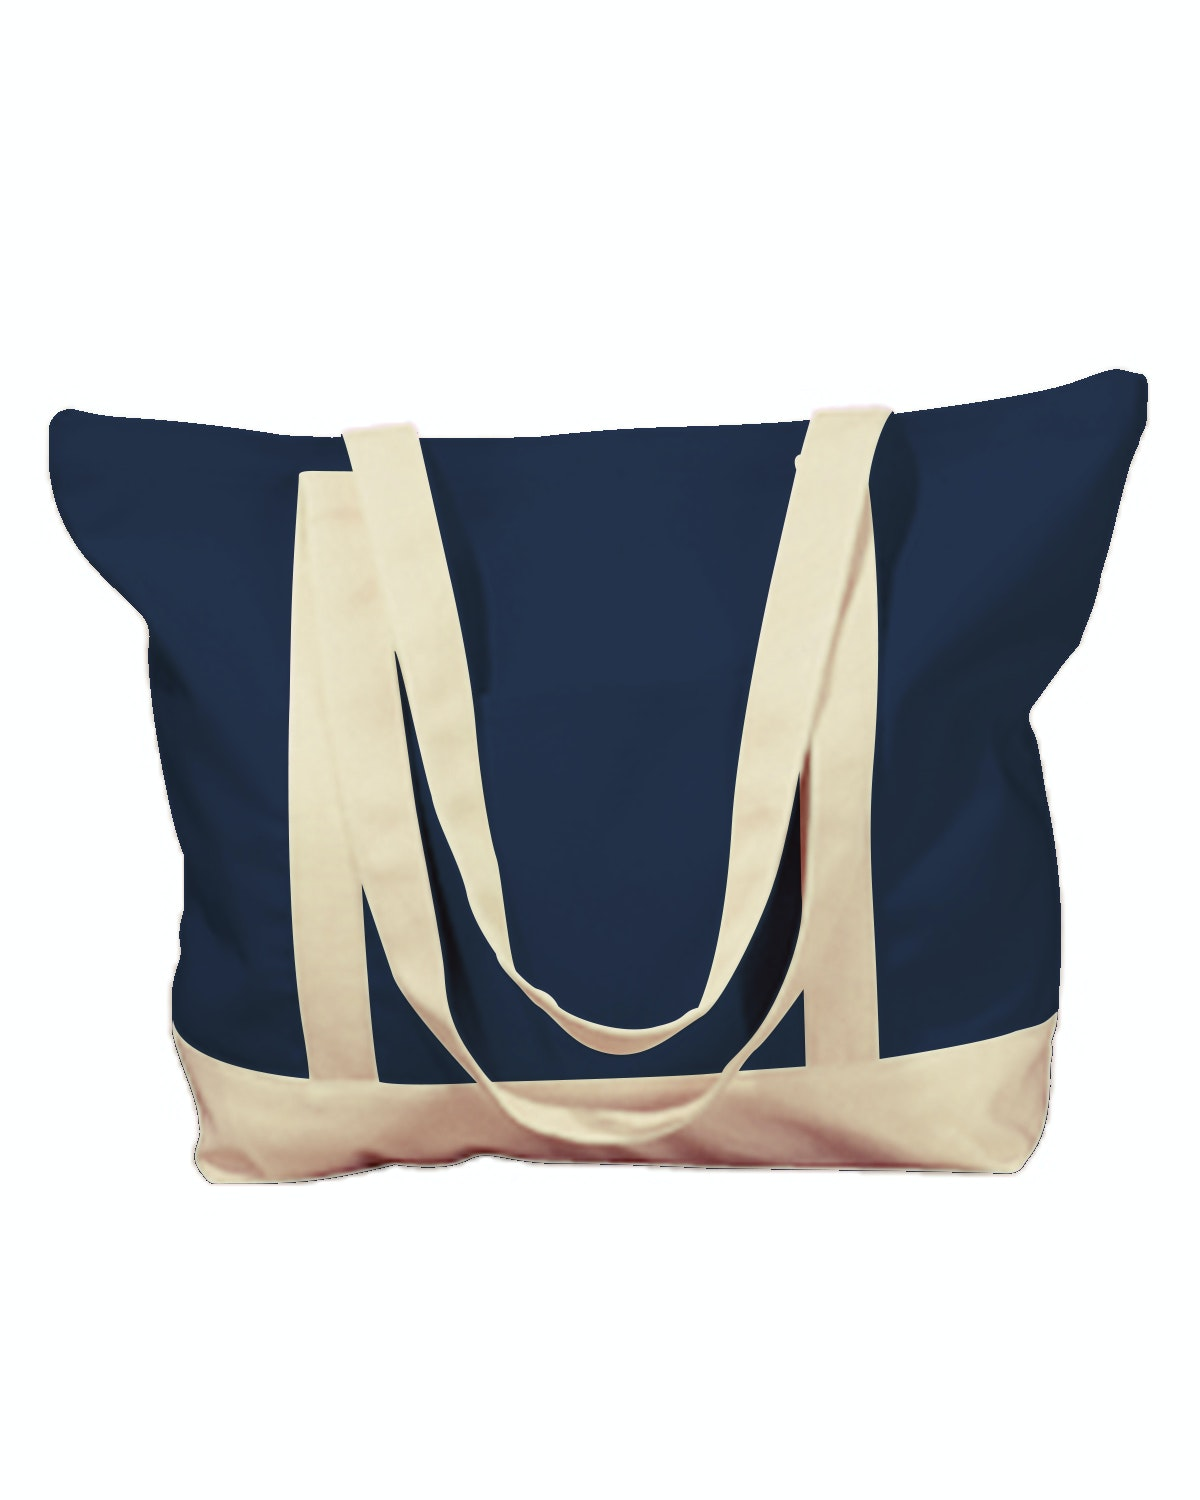 BAGedge BE004 Navy/Natural